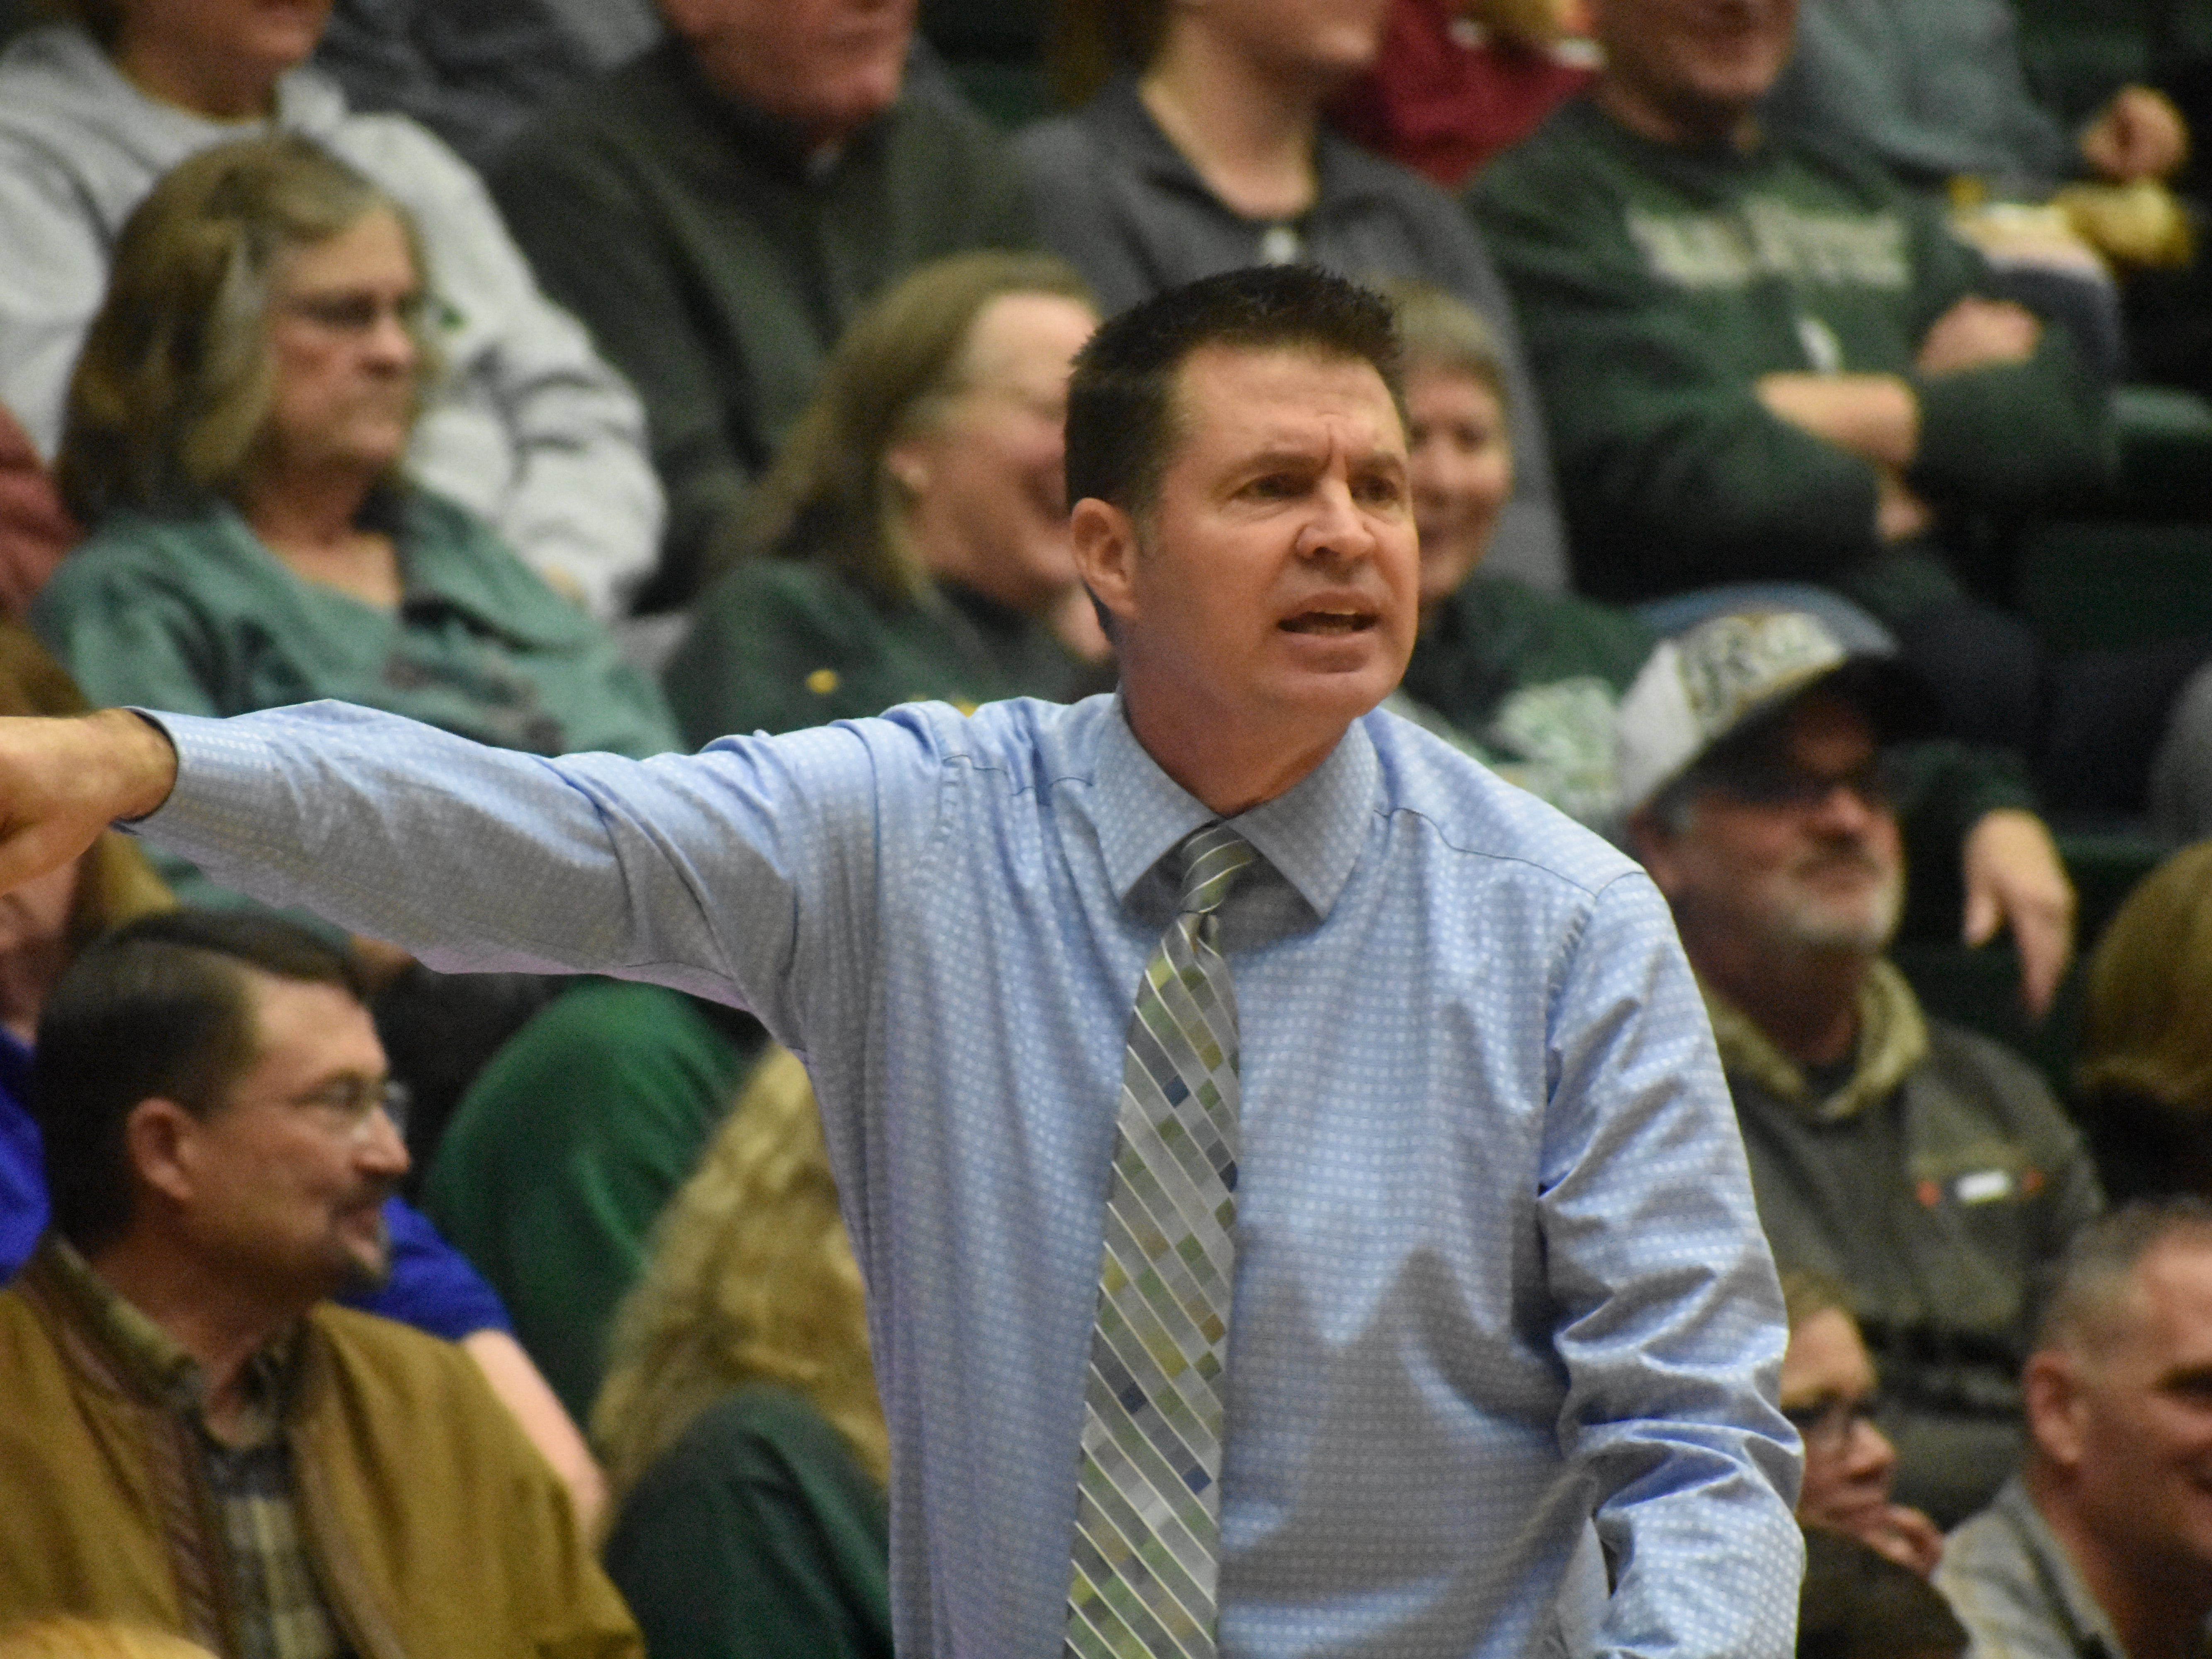 Colorado State basketball coach Ryun Williams signals to his team during Wednesday's game against UNLV at Moby Arena.